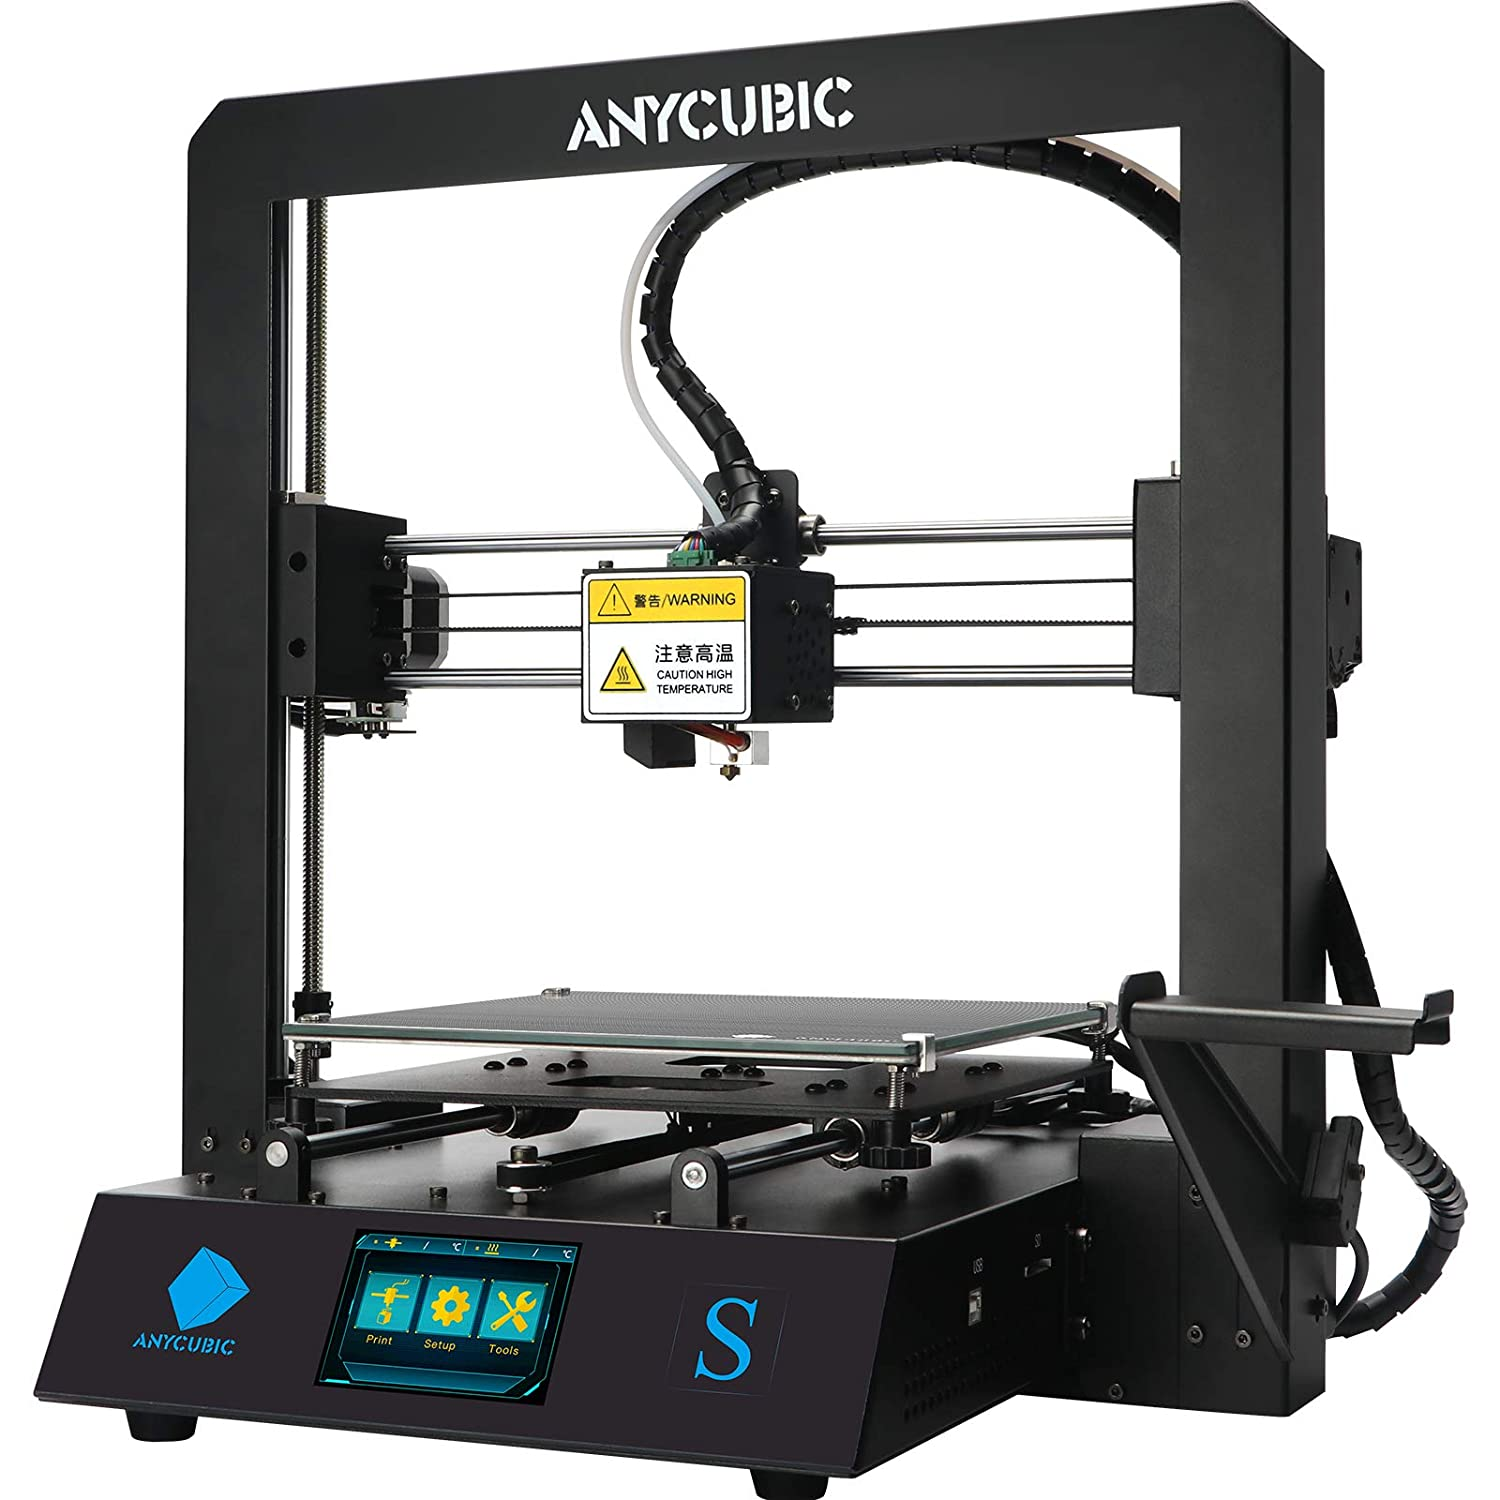 Anycubic Mega S 3d Printer Upgrade Metal Frame Fdm 3d Printer With Extruder And Suspended Filament Rack Free Test Pla Filament Works With Tpu Pla Abs 8 27 L X8 27 W X8 07 H Printing Size Amazon Com Industrial Scientific